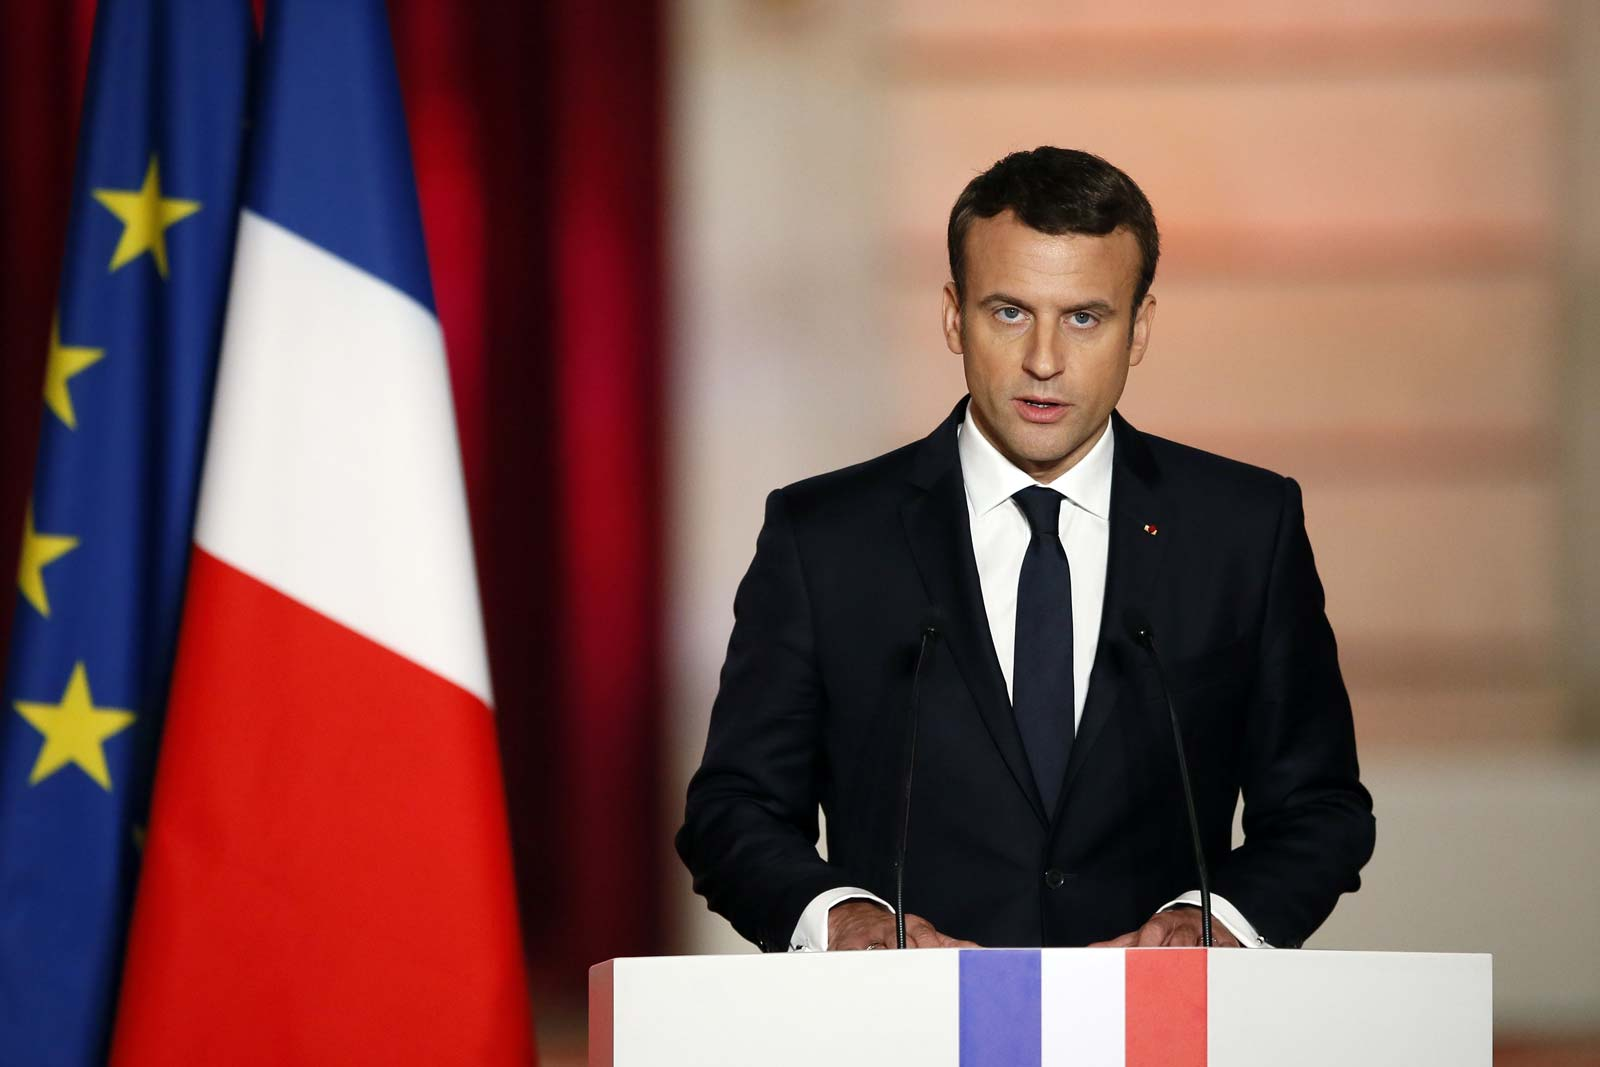 French President Macron On Biden Victory Chance To Make Our Planet Great Again